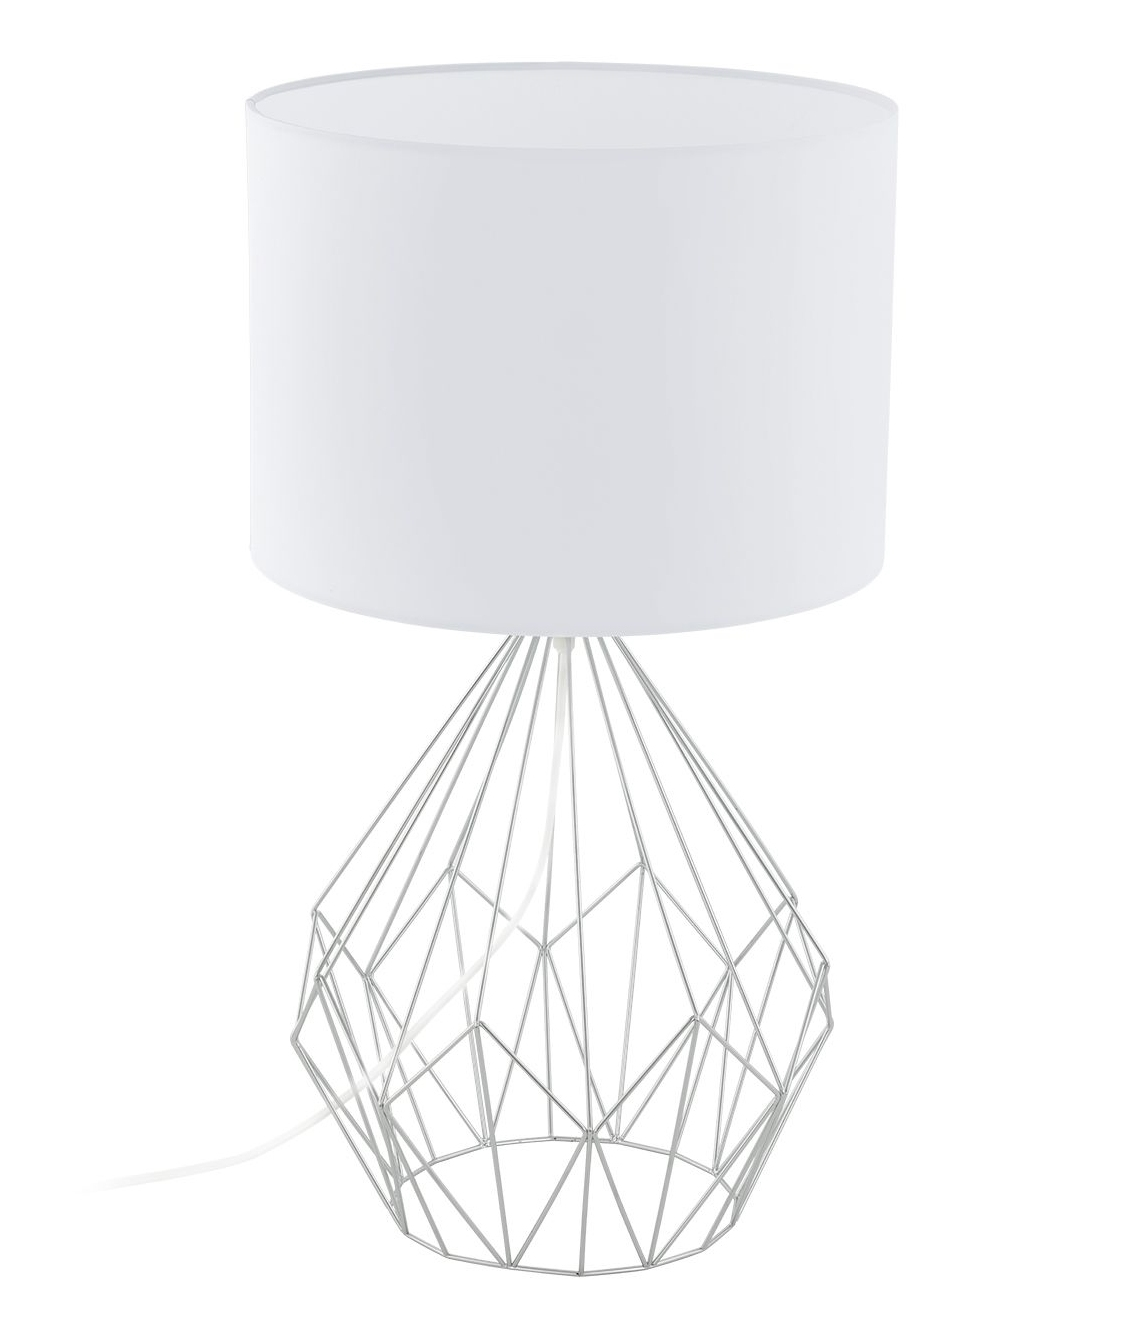 Hexagonal Cage Table Lamp With A Fabric Shade